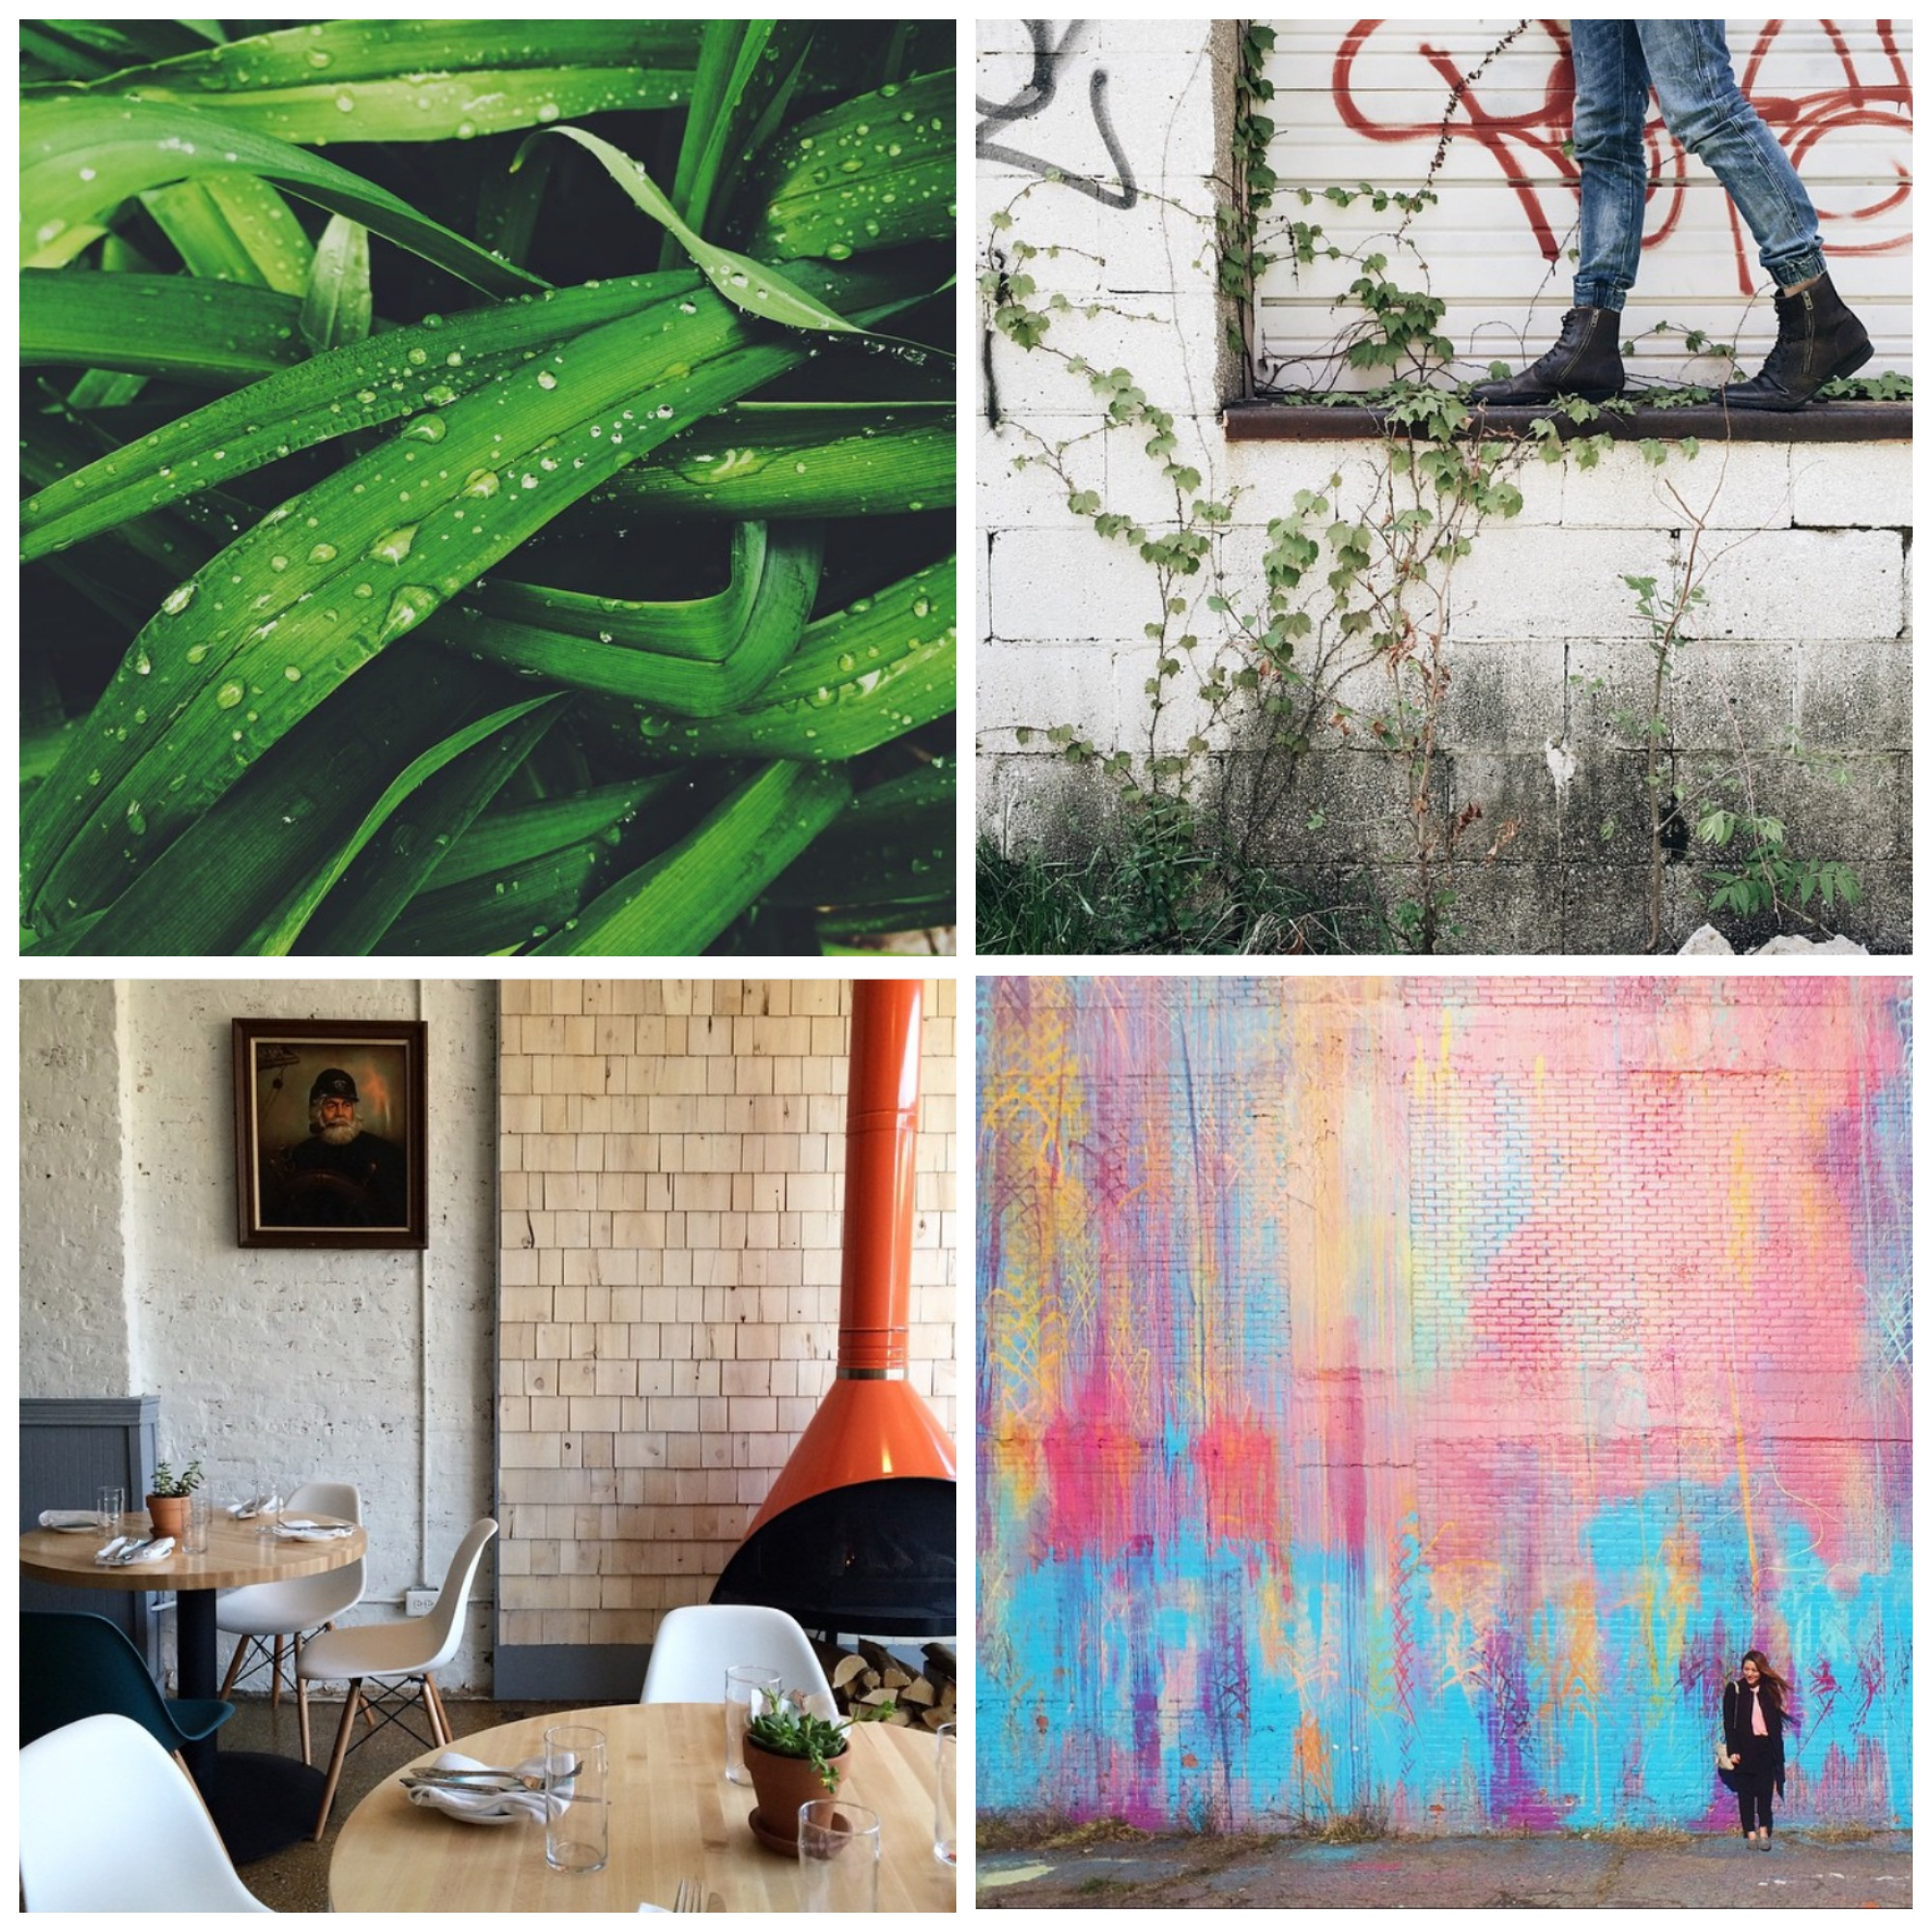 This week's Instacrushes! Clockwise from top left: @ ohemmadeer , @ anarbatskiy , @ seoung , @ thehauteboheme